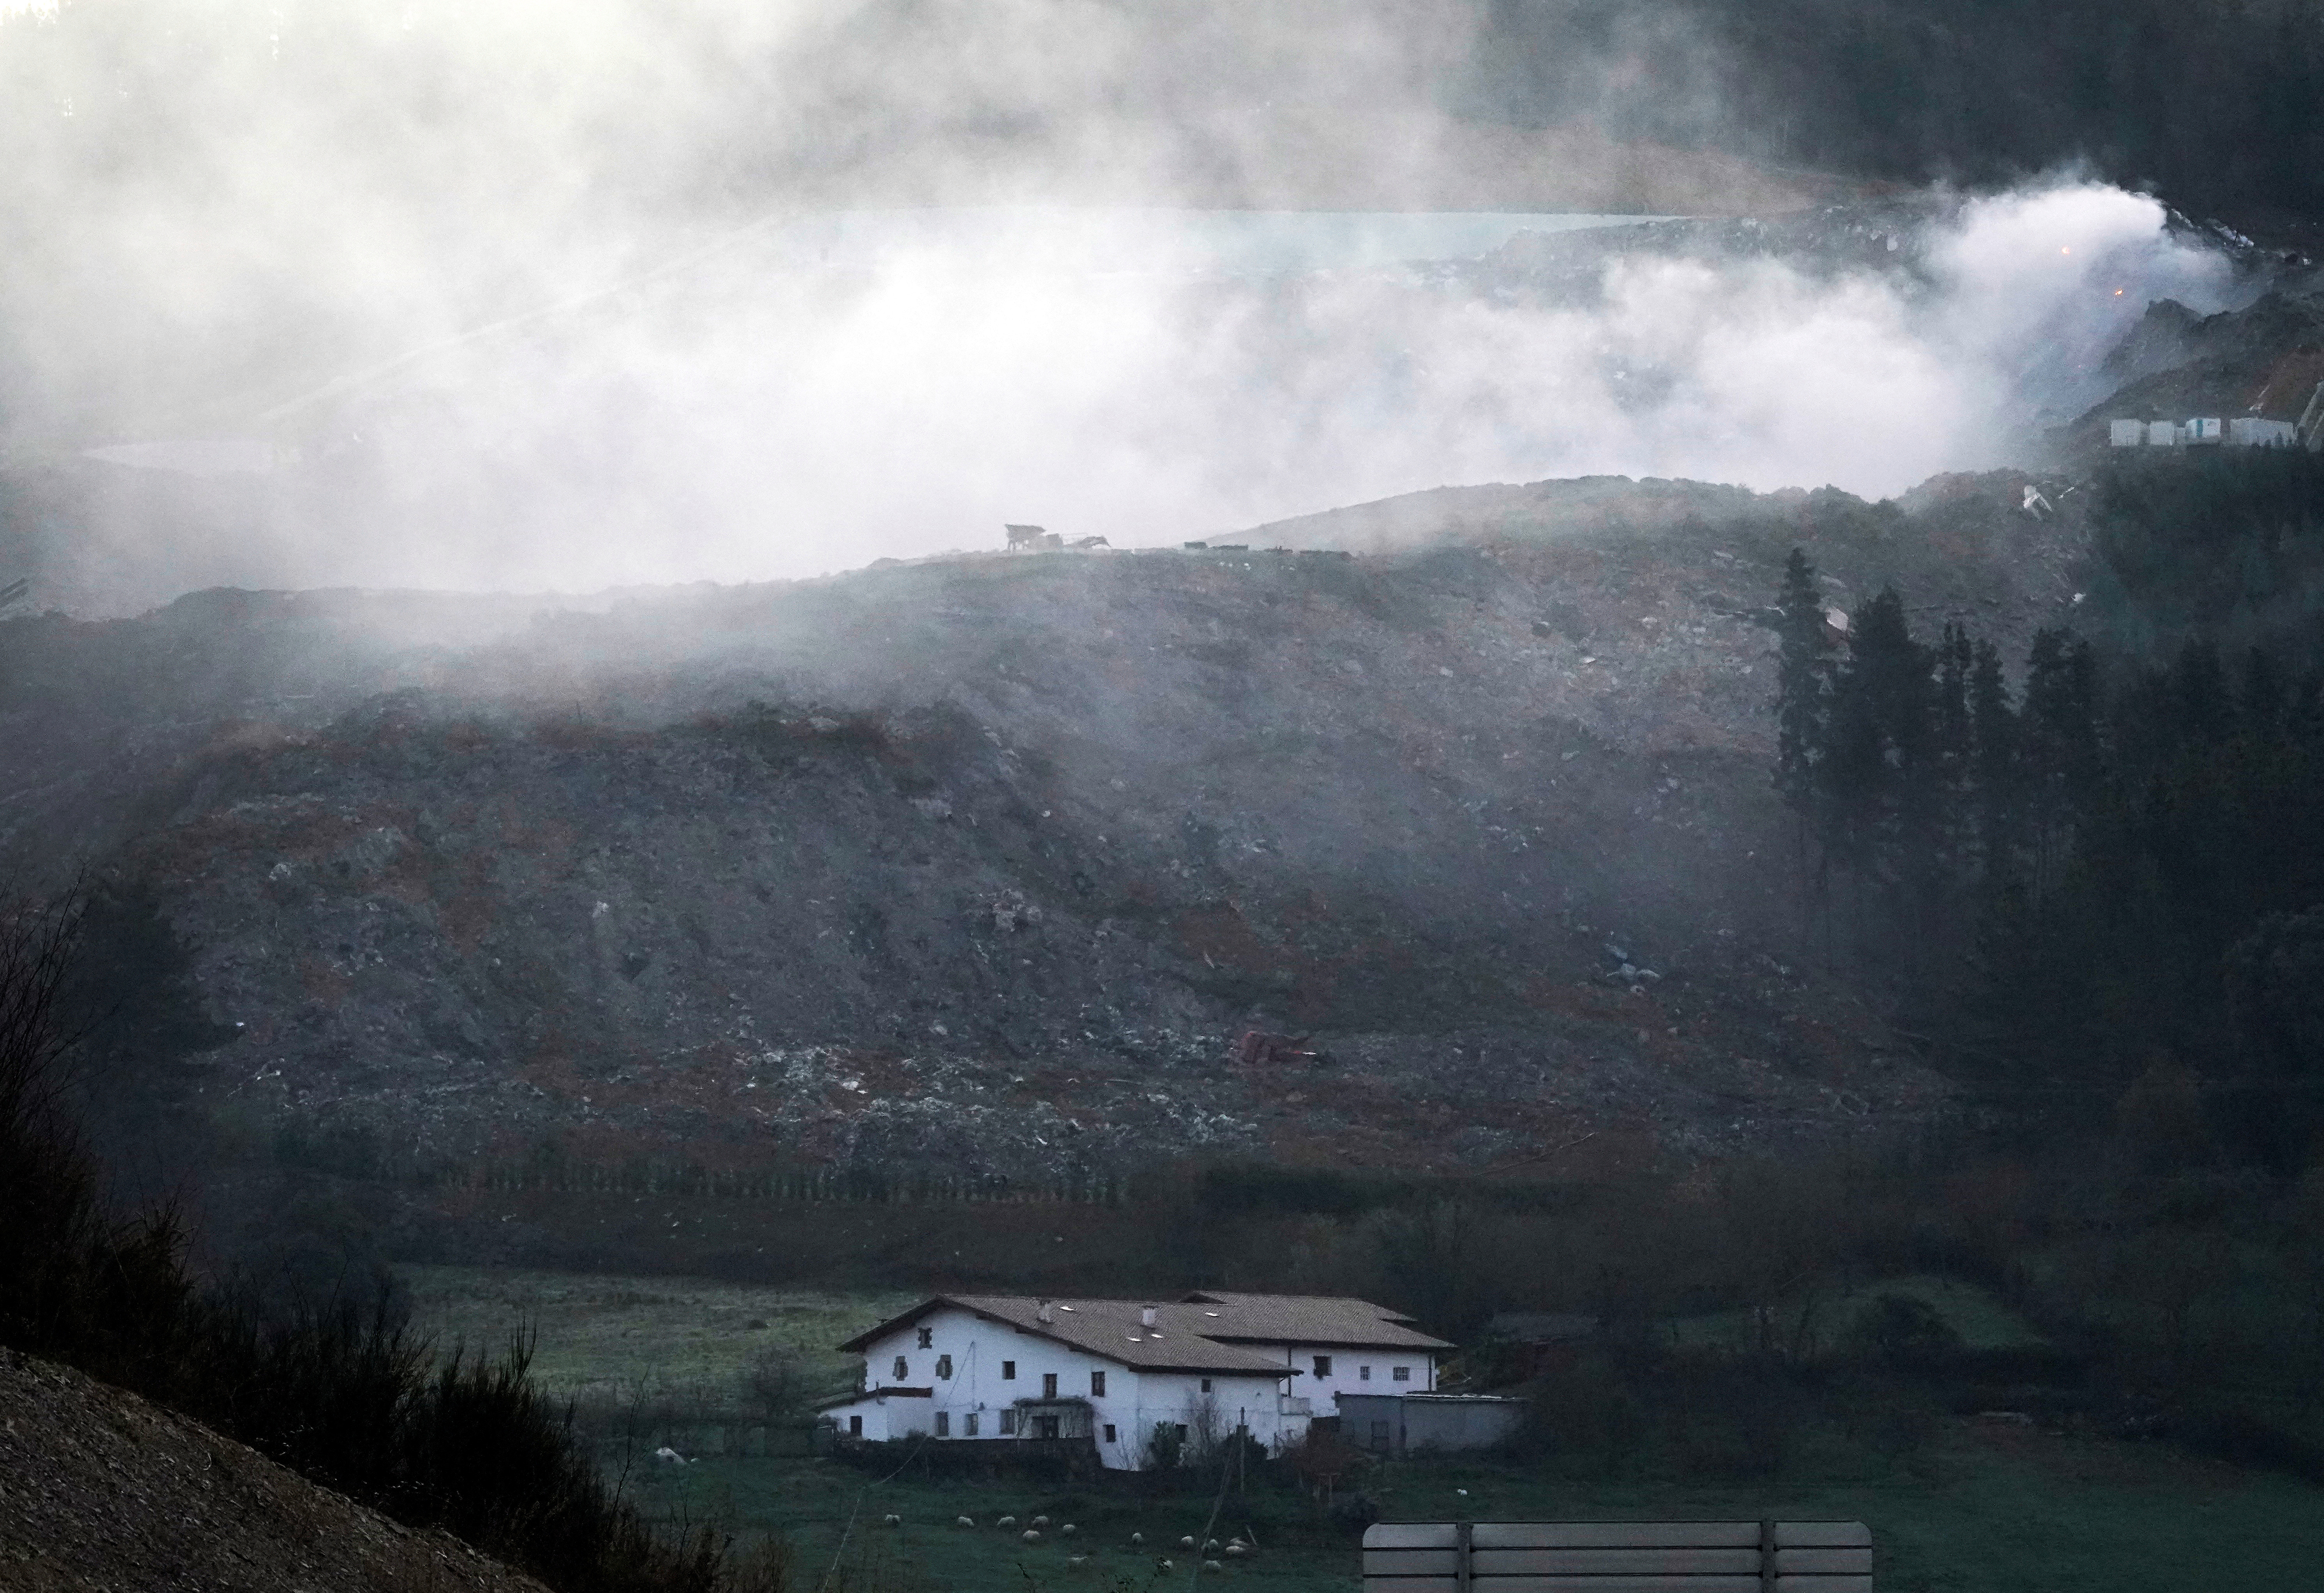 Eibar vs Real Sociedad postponed over toxic pollution after landfill site collapses 'killing two workers'附近垃圾填埋场发生火灾,埃瓦尔推迟本轮西甲比赛